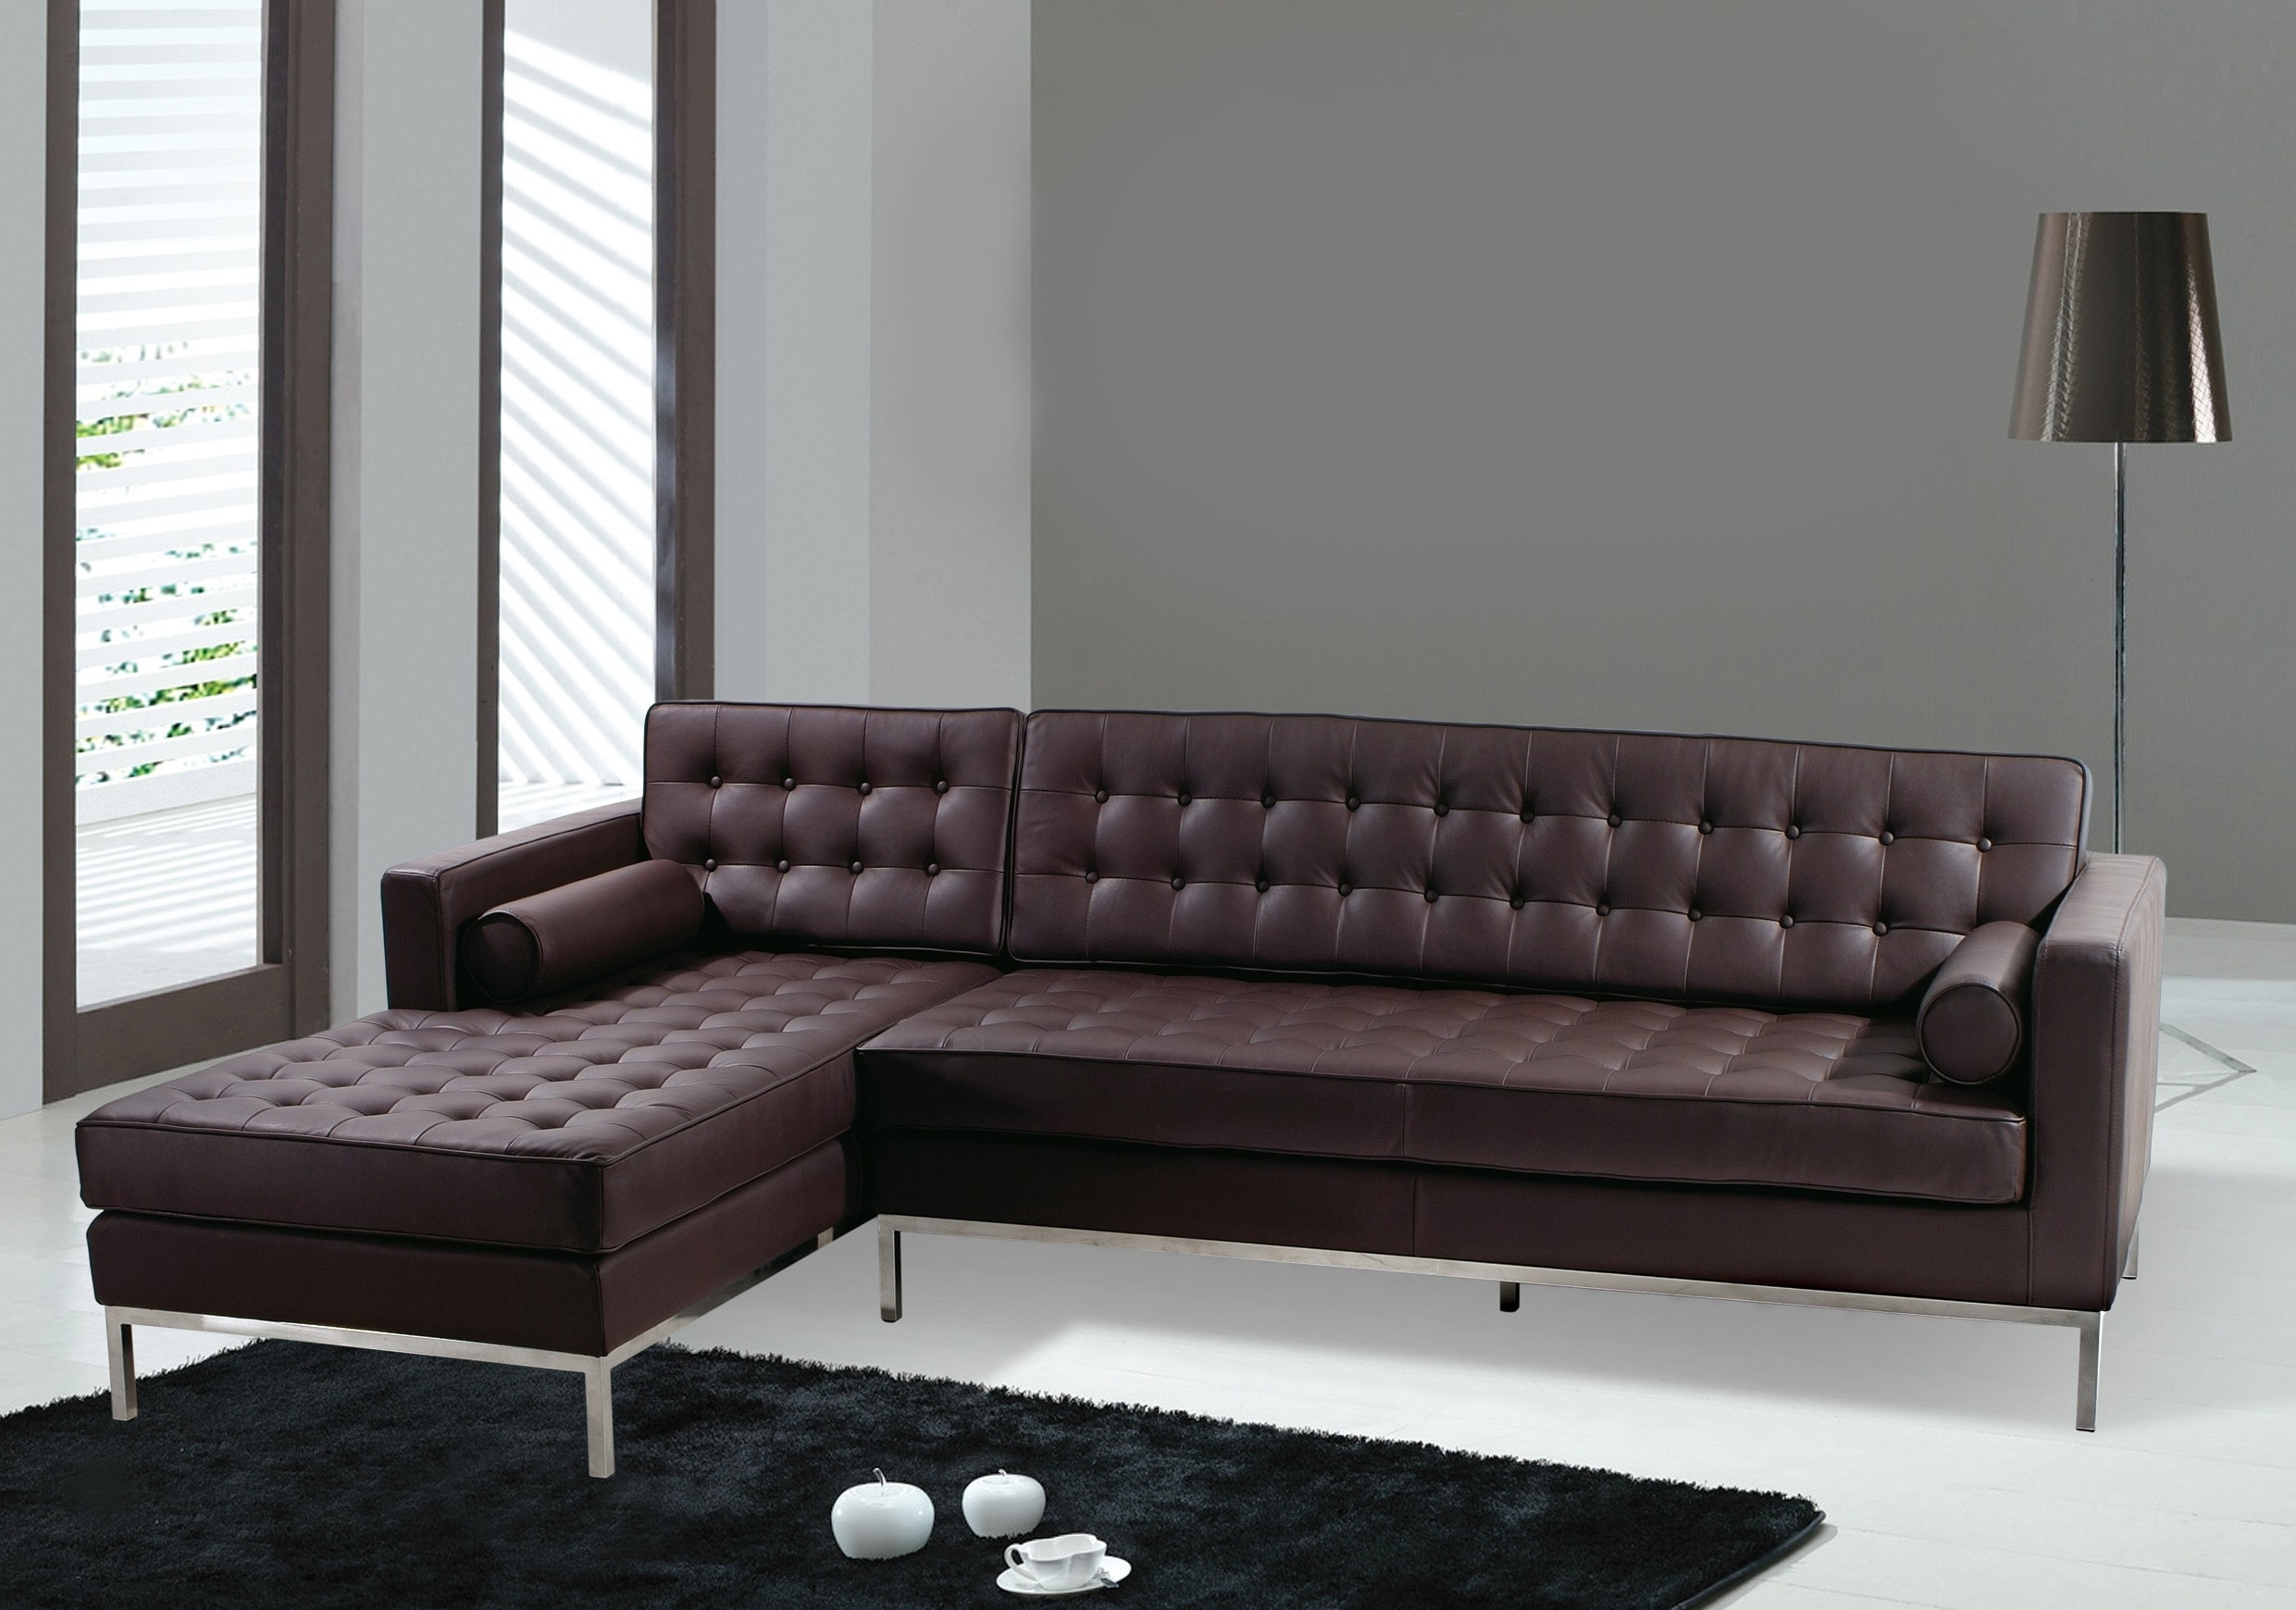 Best Of Sectional Sofa Bed Vancouver Bc – Mediasupload Within Widely Used Vancouver Bc Sectional Sofas (View 10 of 15)